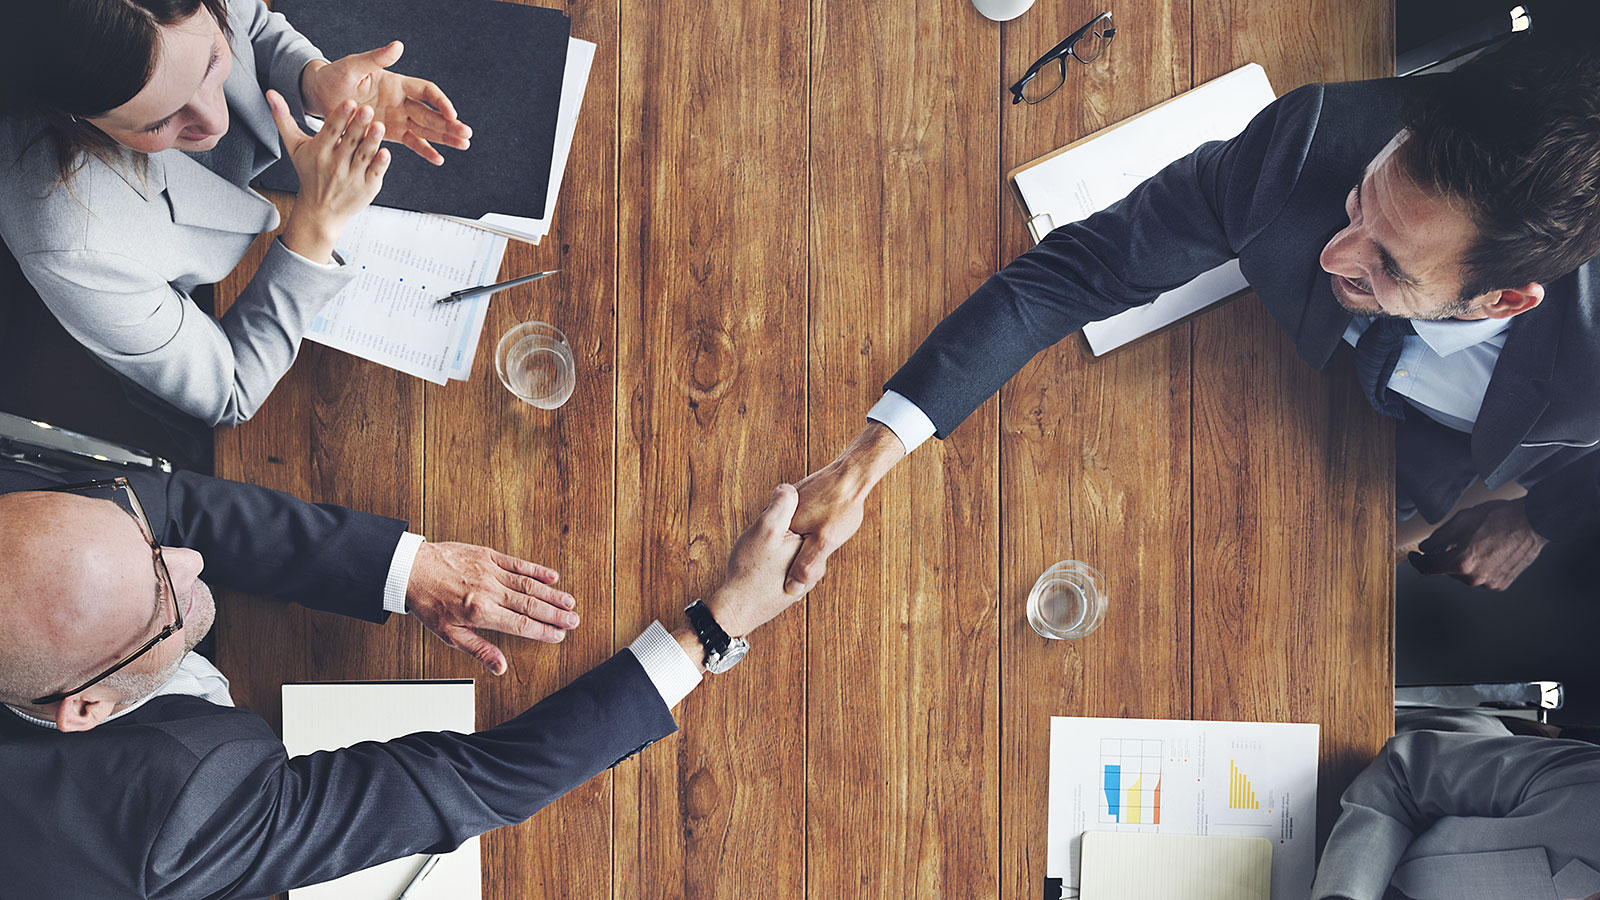 How to close a business deal successfully